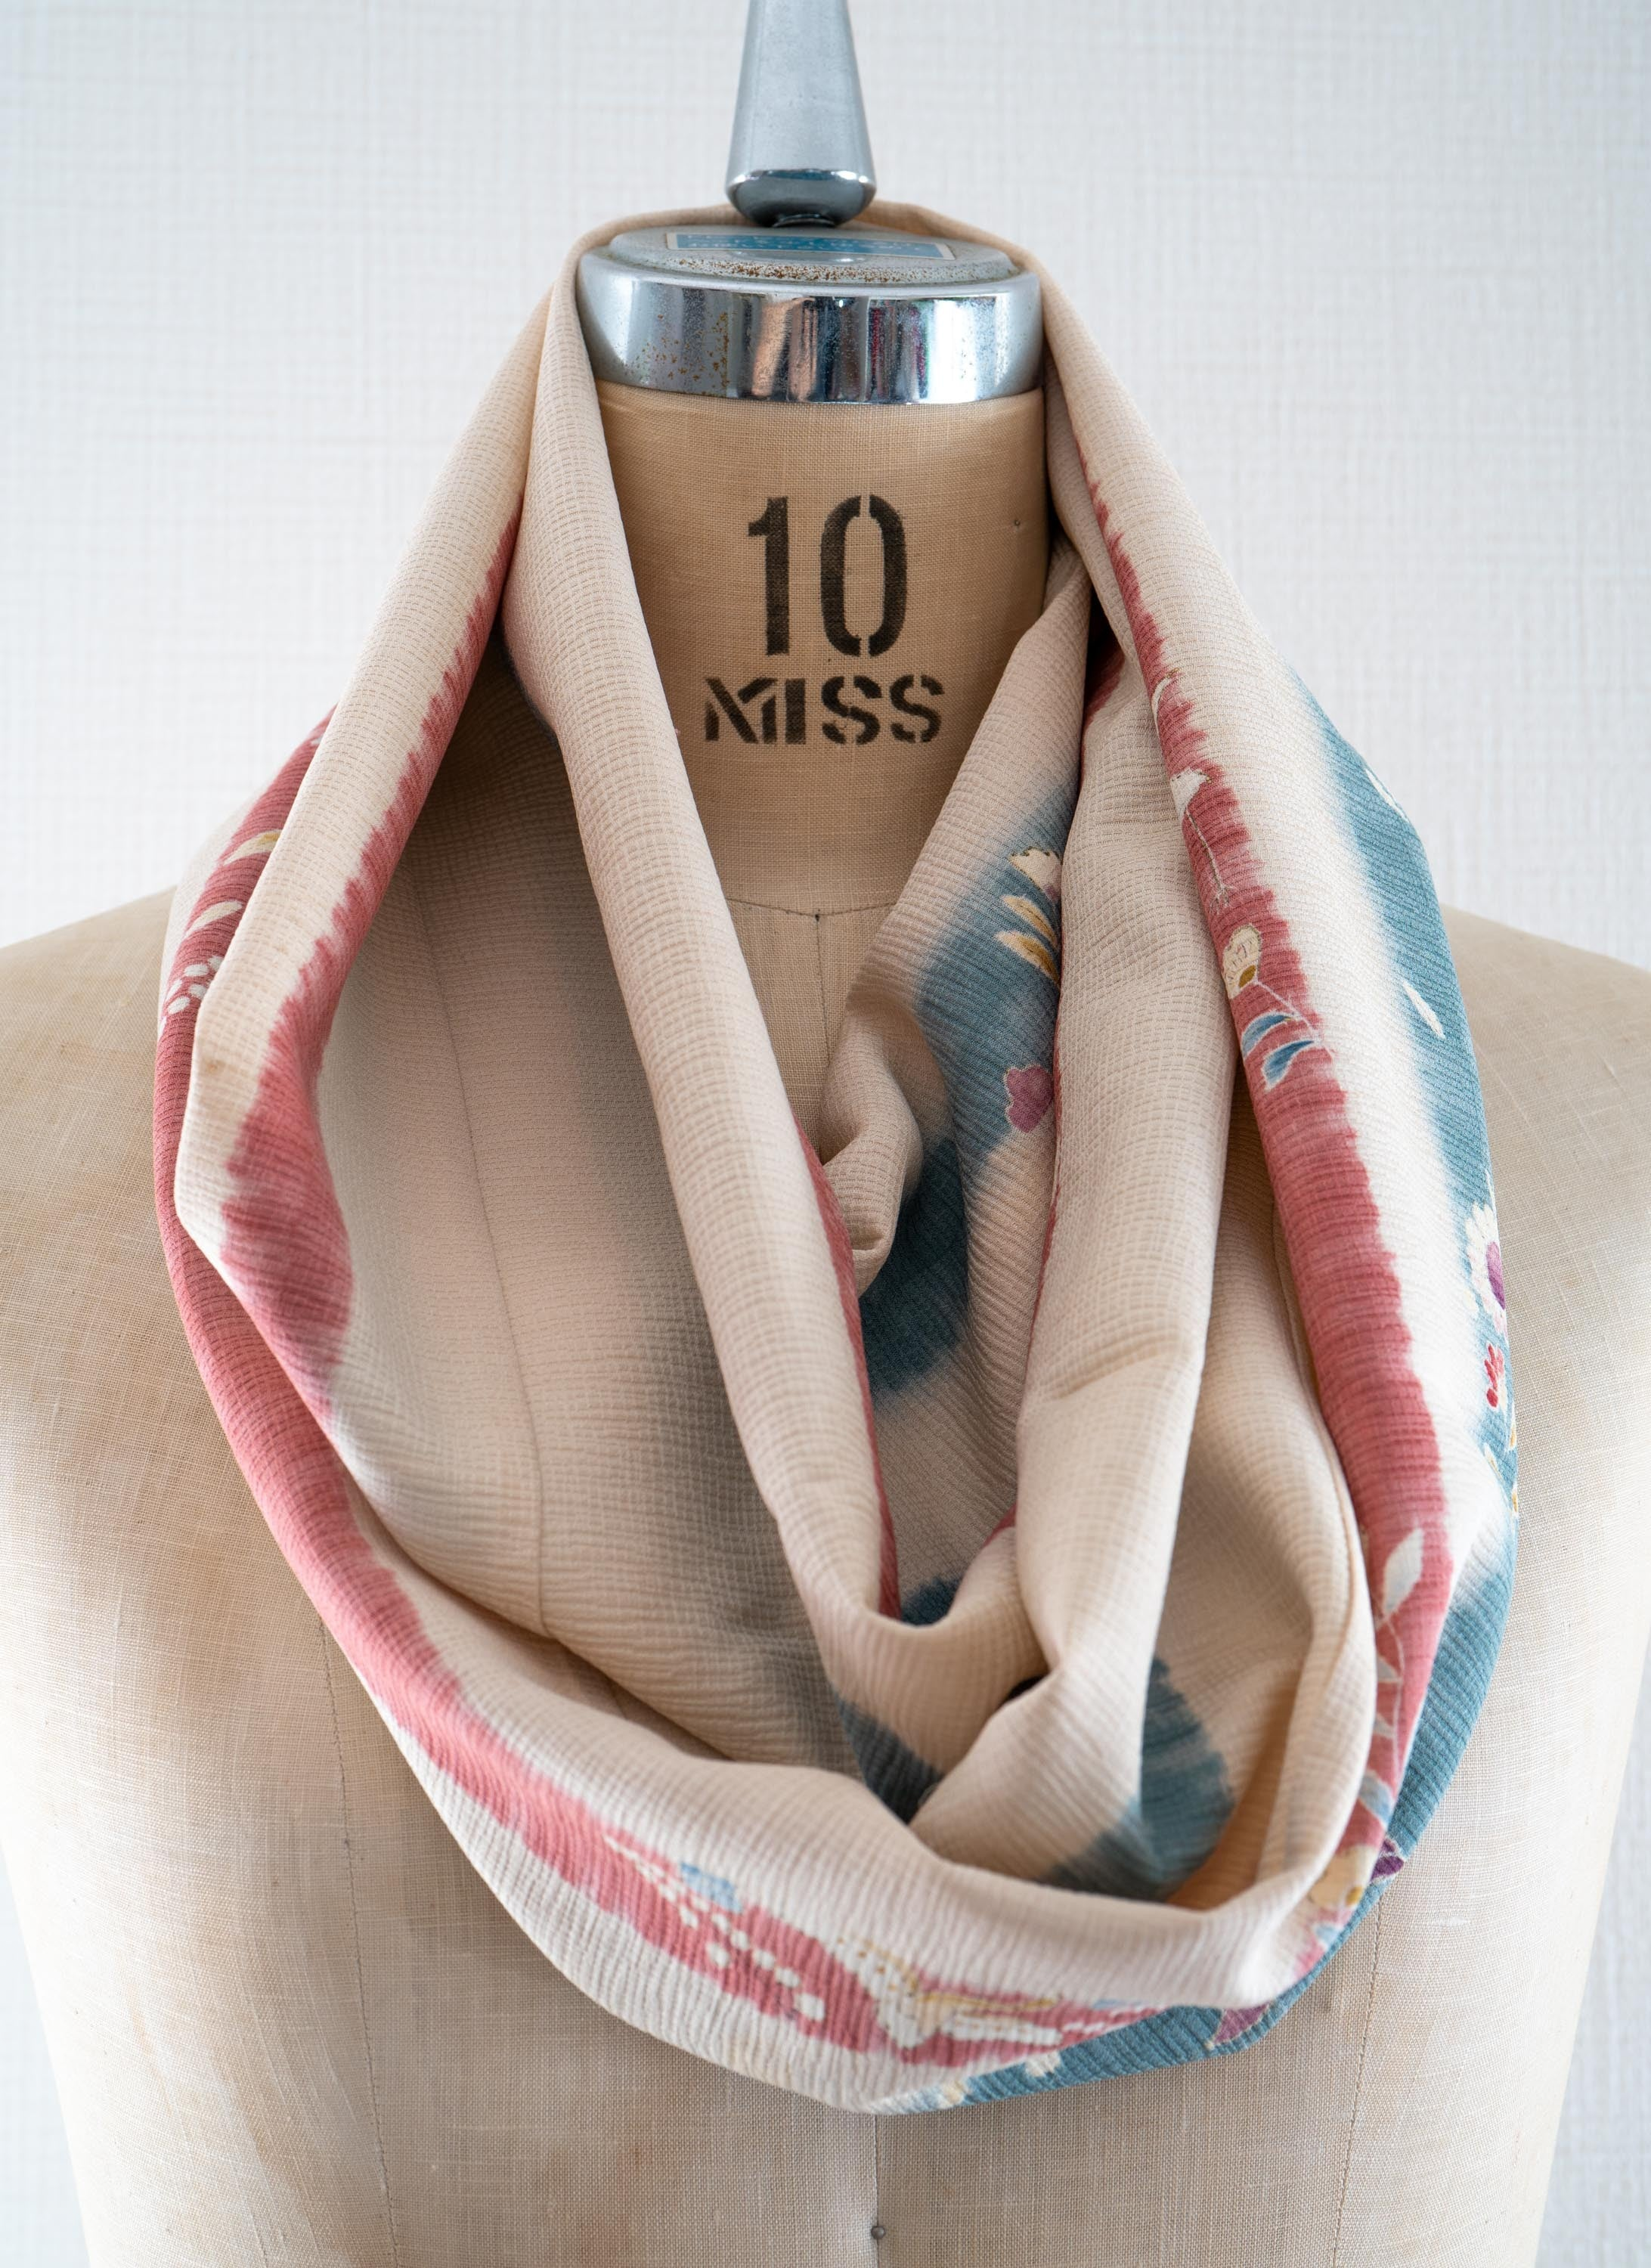 Striped Floral Kimono Scarf Upcycled Silk Japanese Robe Infinity Scarves White Blue Red Stripes Made In Kyoto Japan Heron Birds